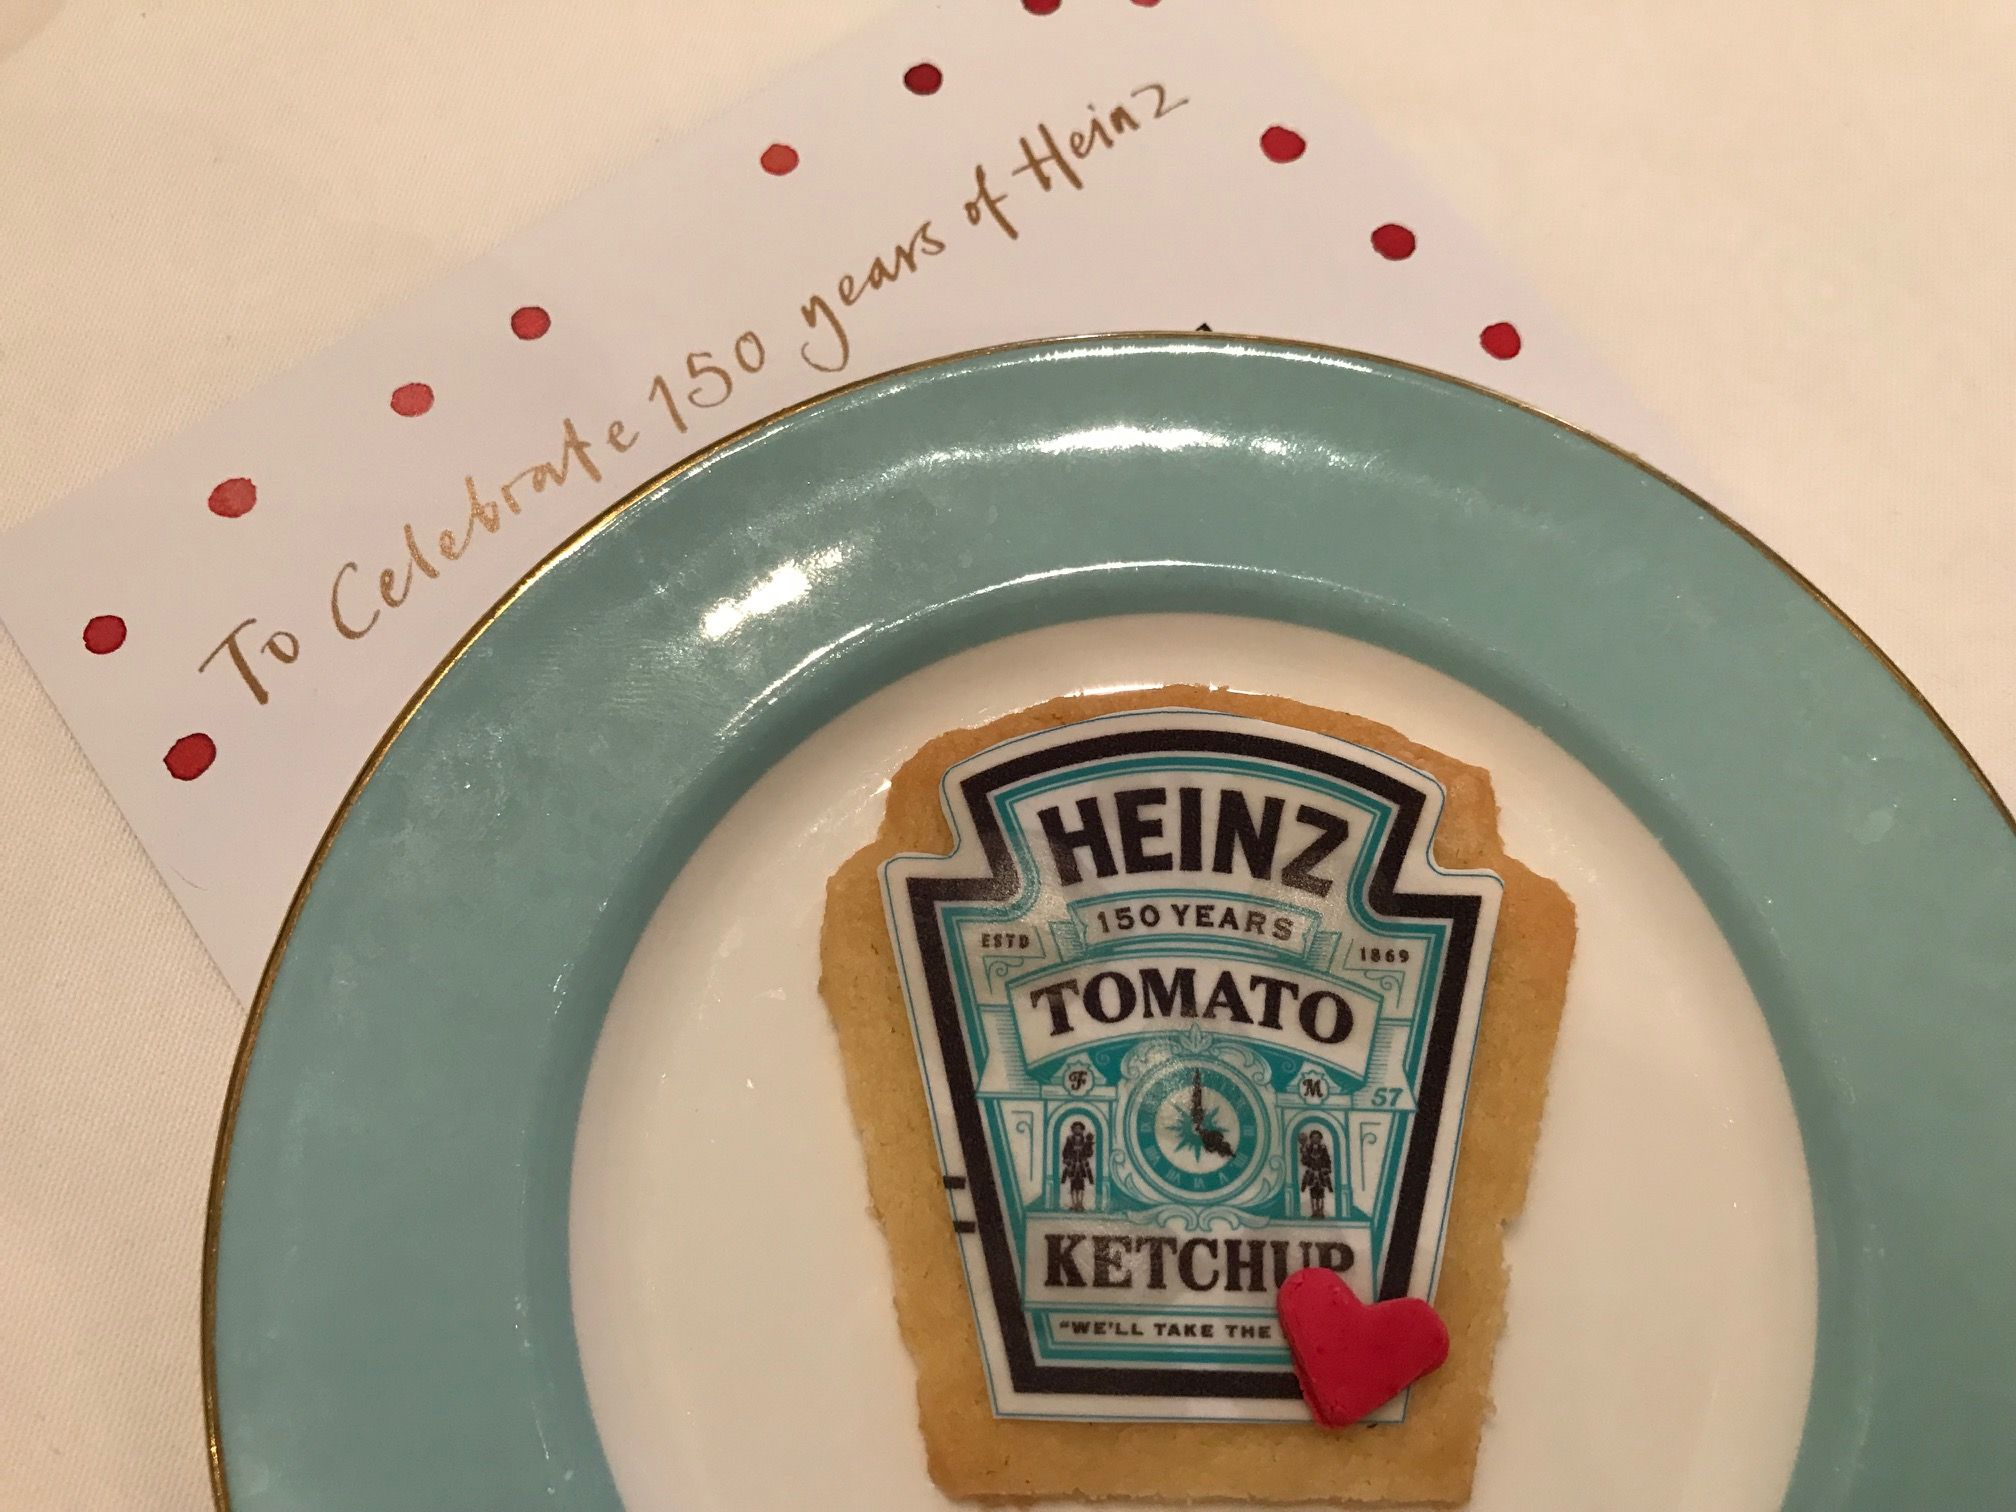 Fortnum & Mason cookie in shape of Heinz label